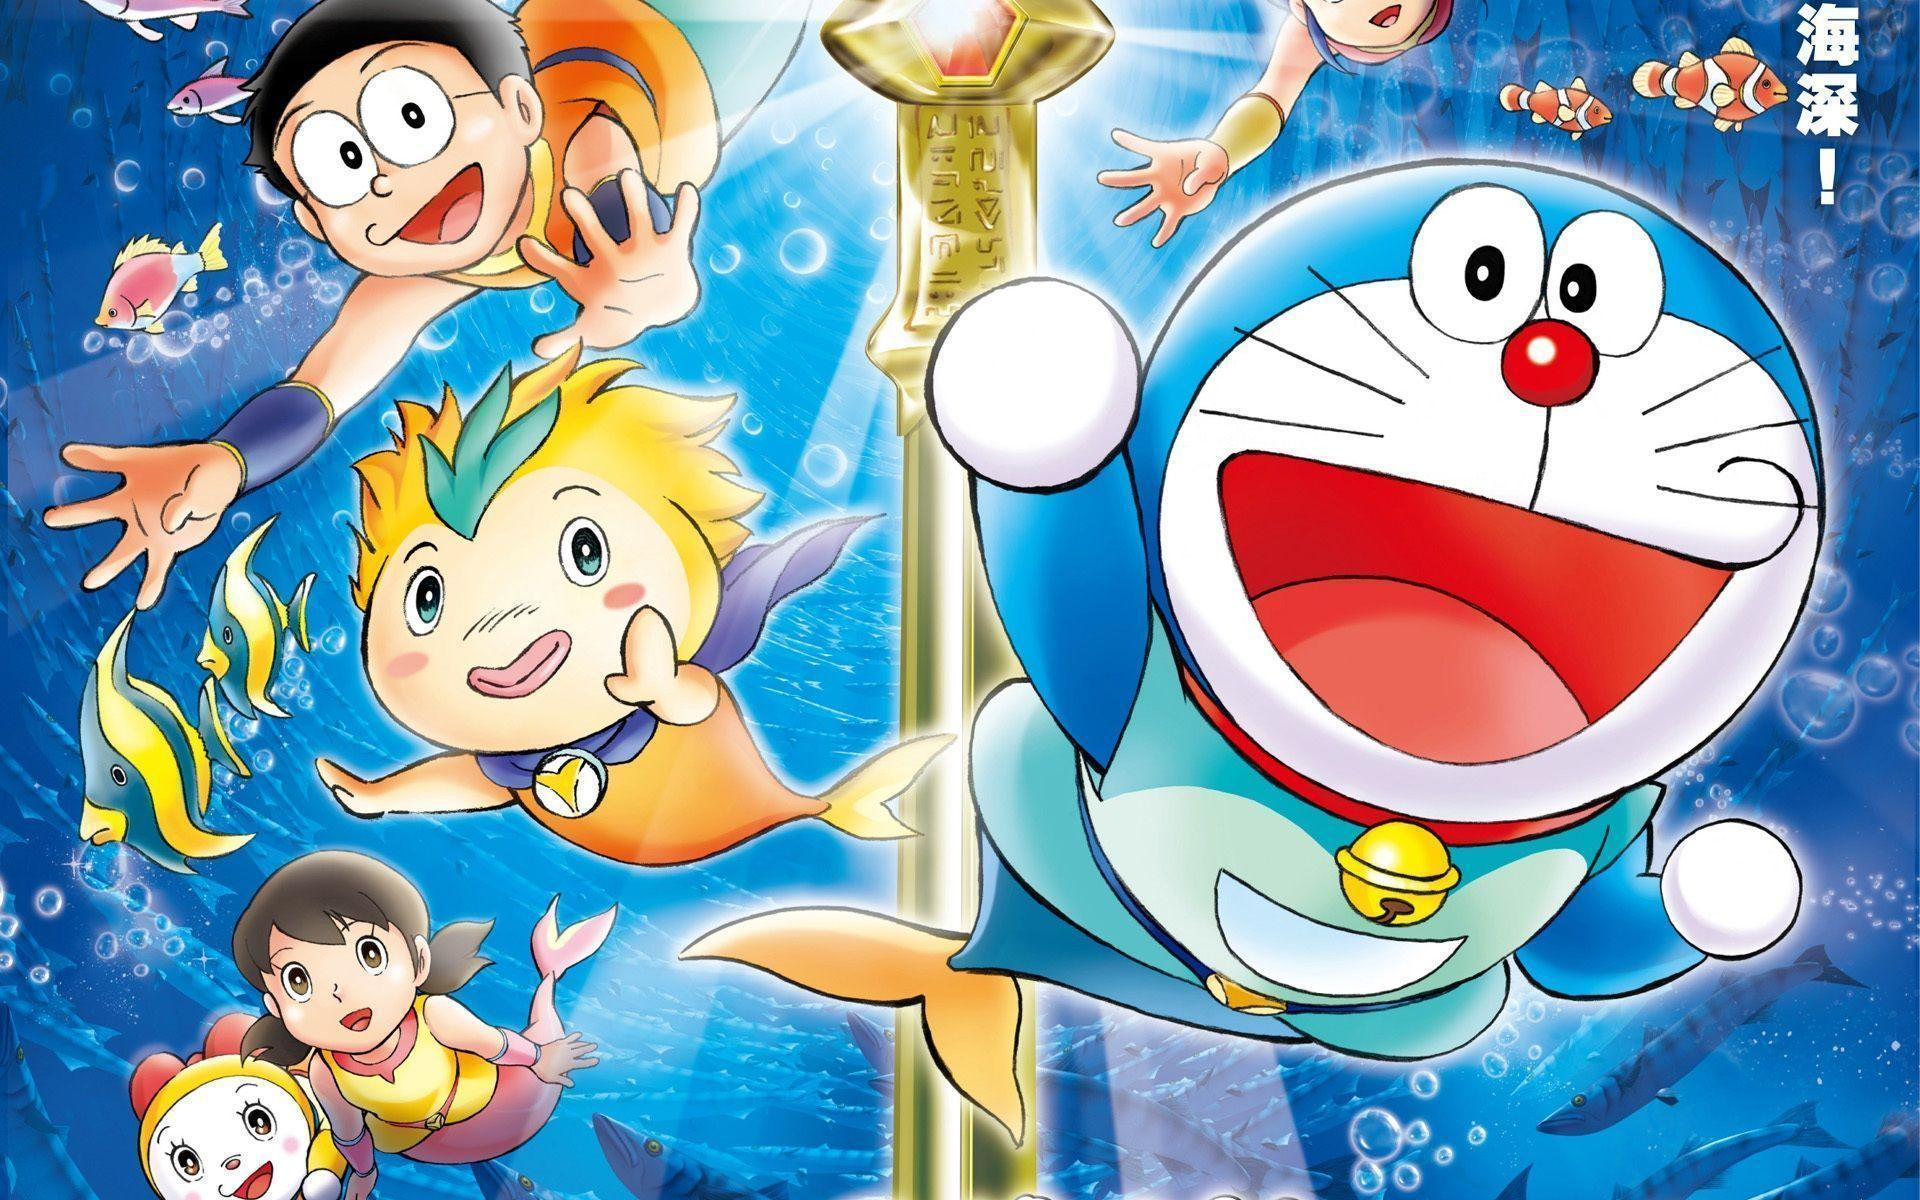 Doraemon Cartoon Character Desktop | ardiwallpaper.